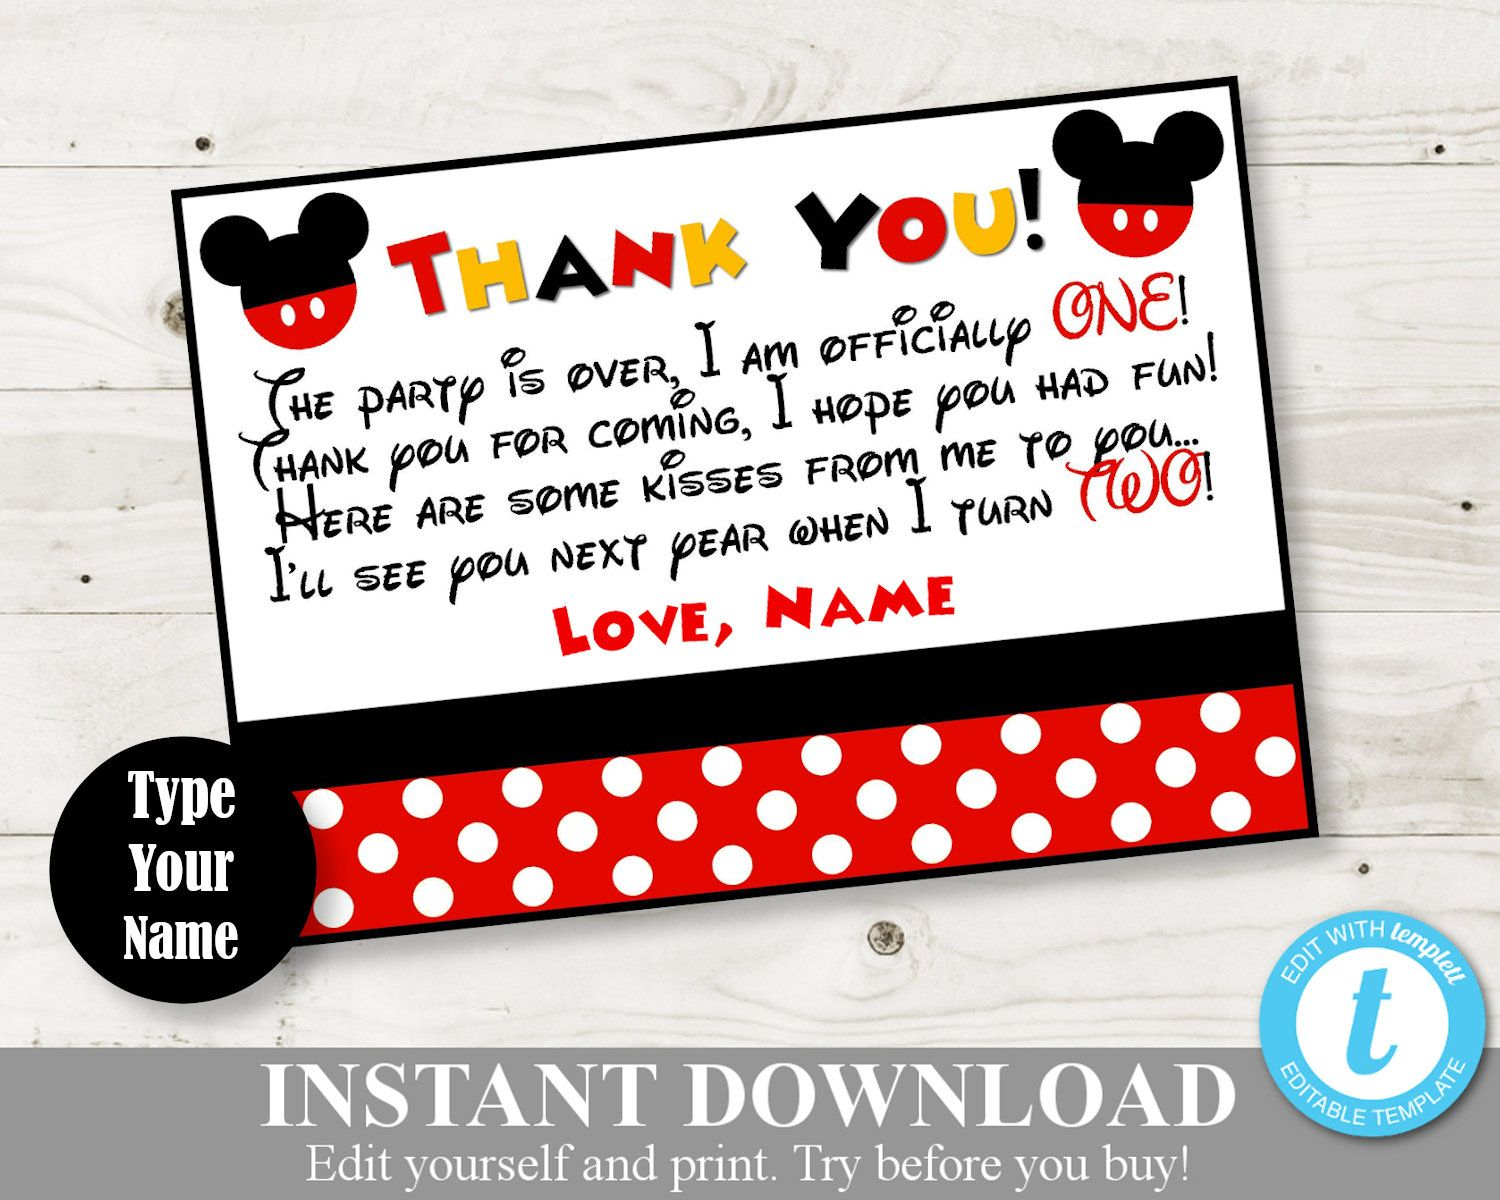 Instant Download Editable Mouse 5x7 One Year Thank You Cards Etsy Mickey Mouse Birthday Party Thank You Cards Mickey Mouse Themed Birthday Party